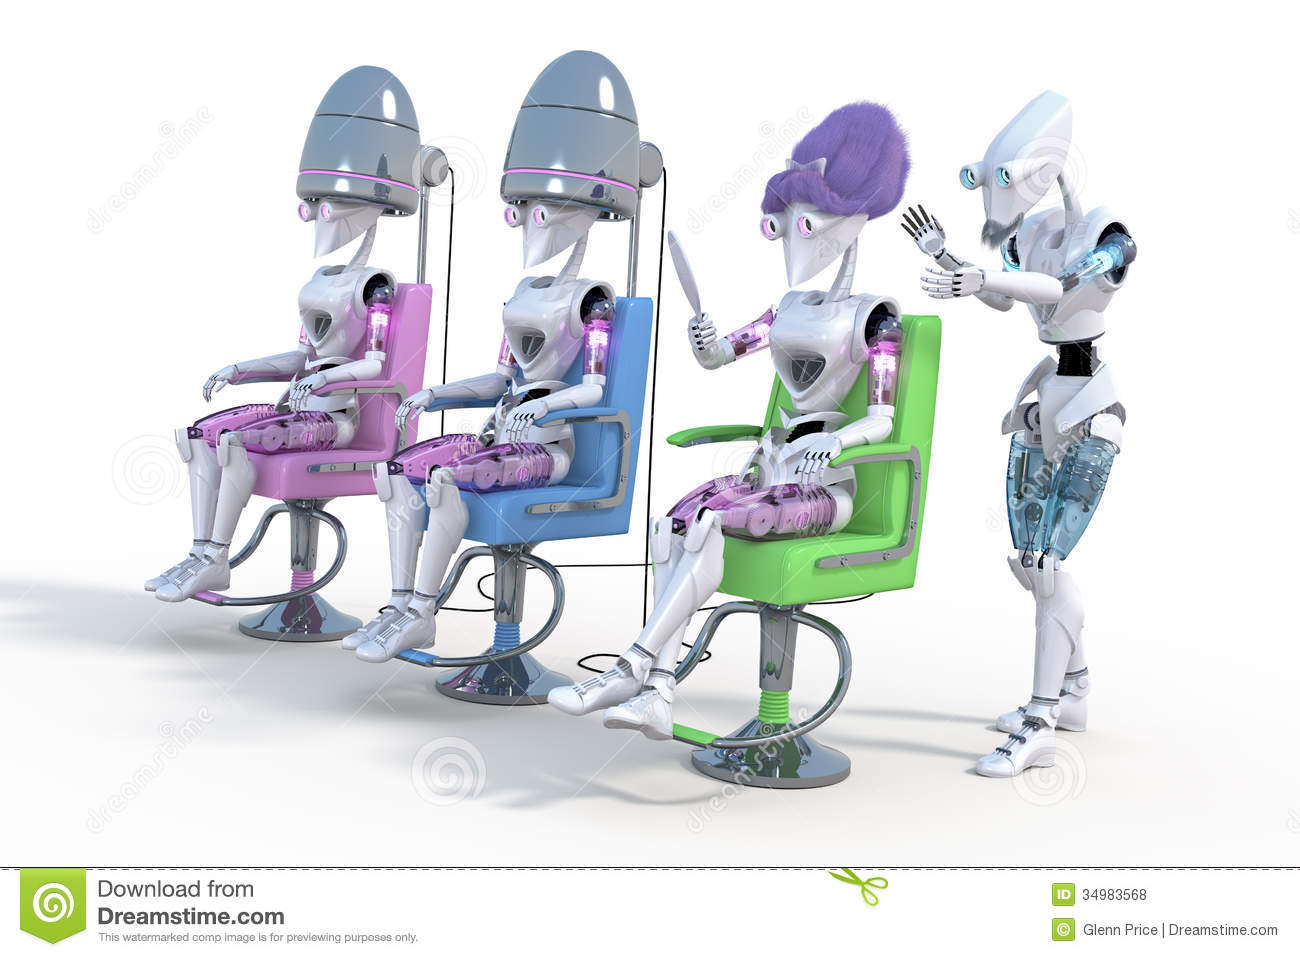 Salon De La Robotique Robot Hair Salon Stock Illustration Illustration Of Fantasy